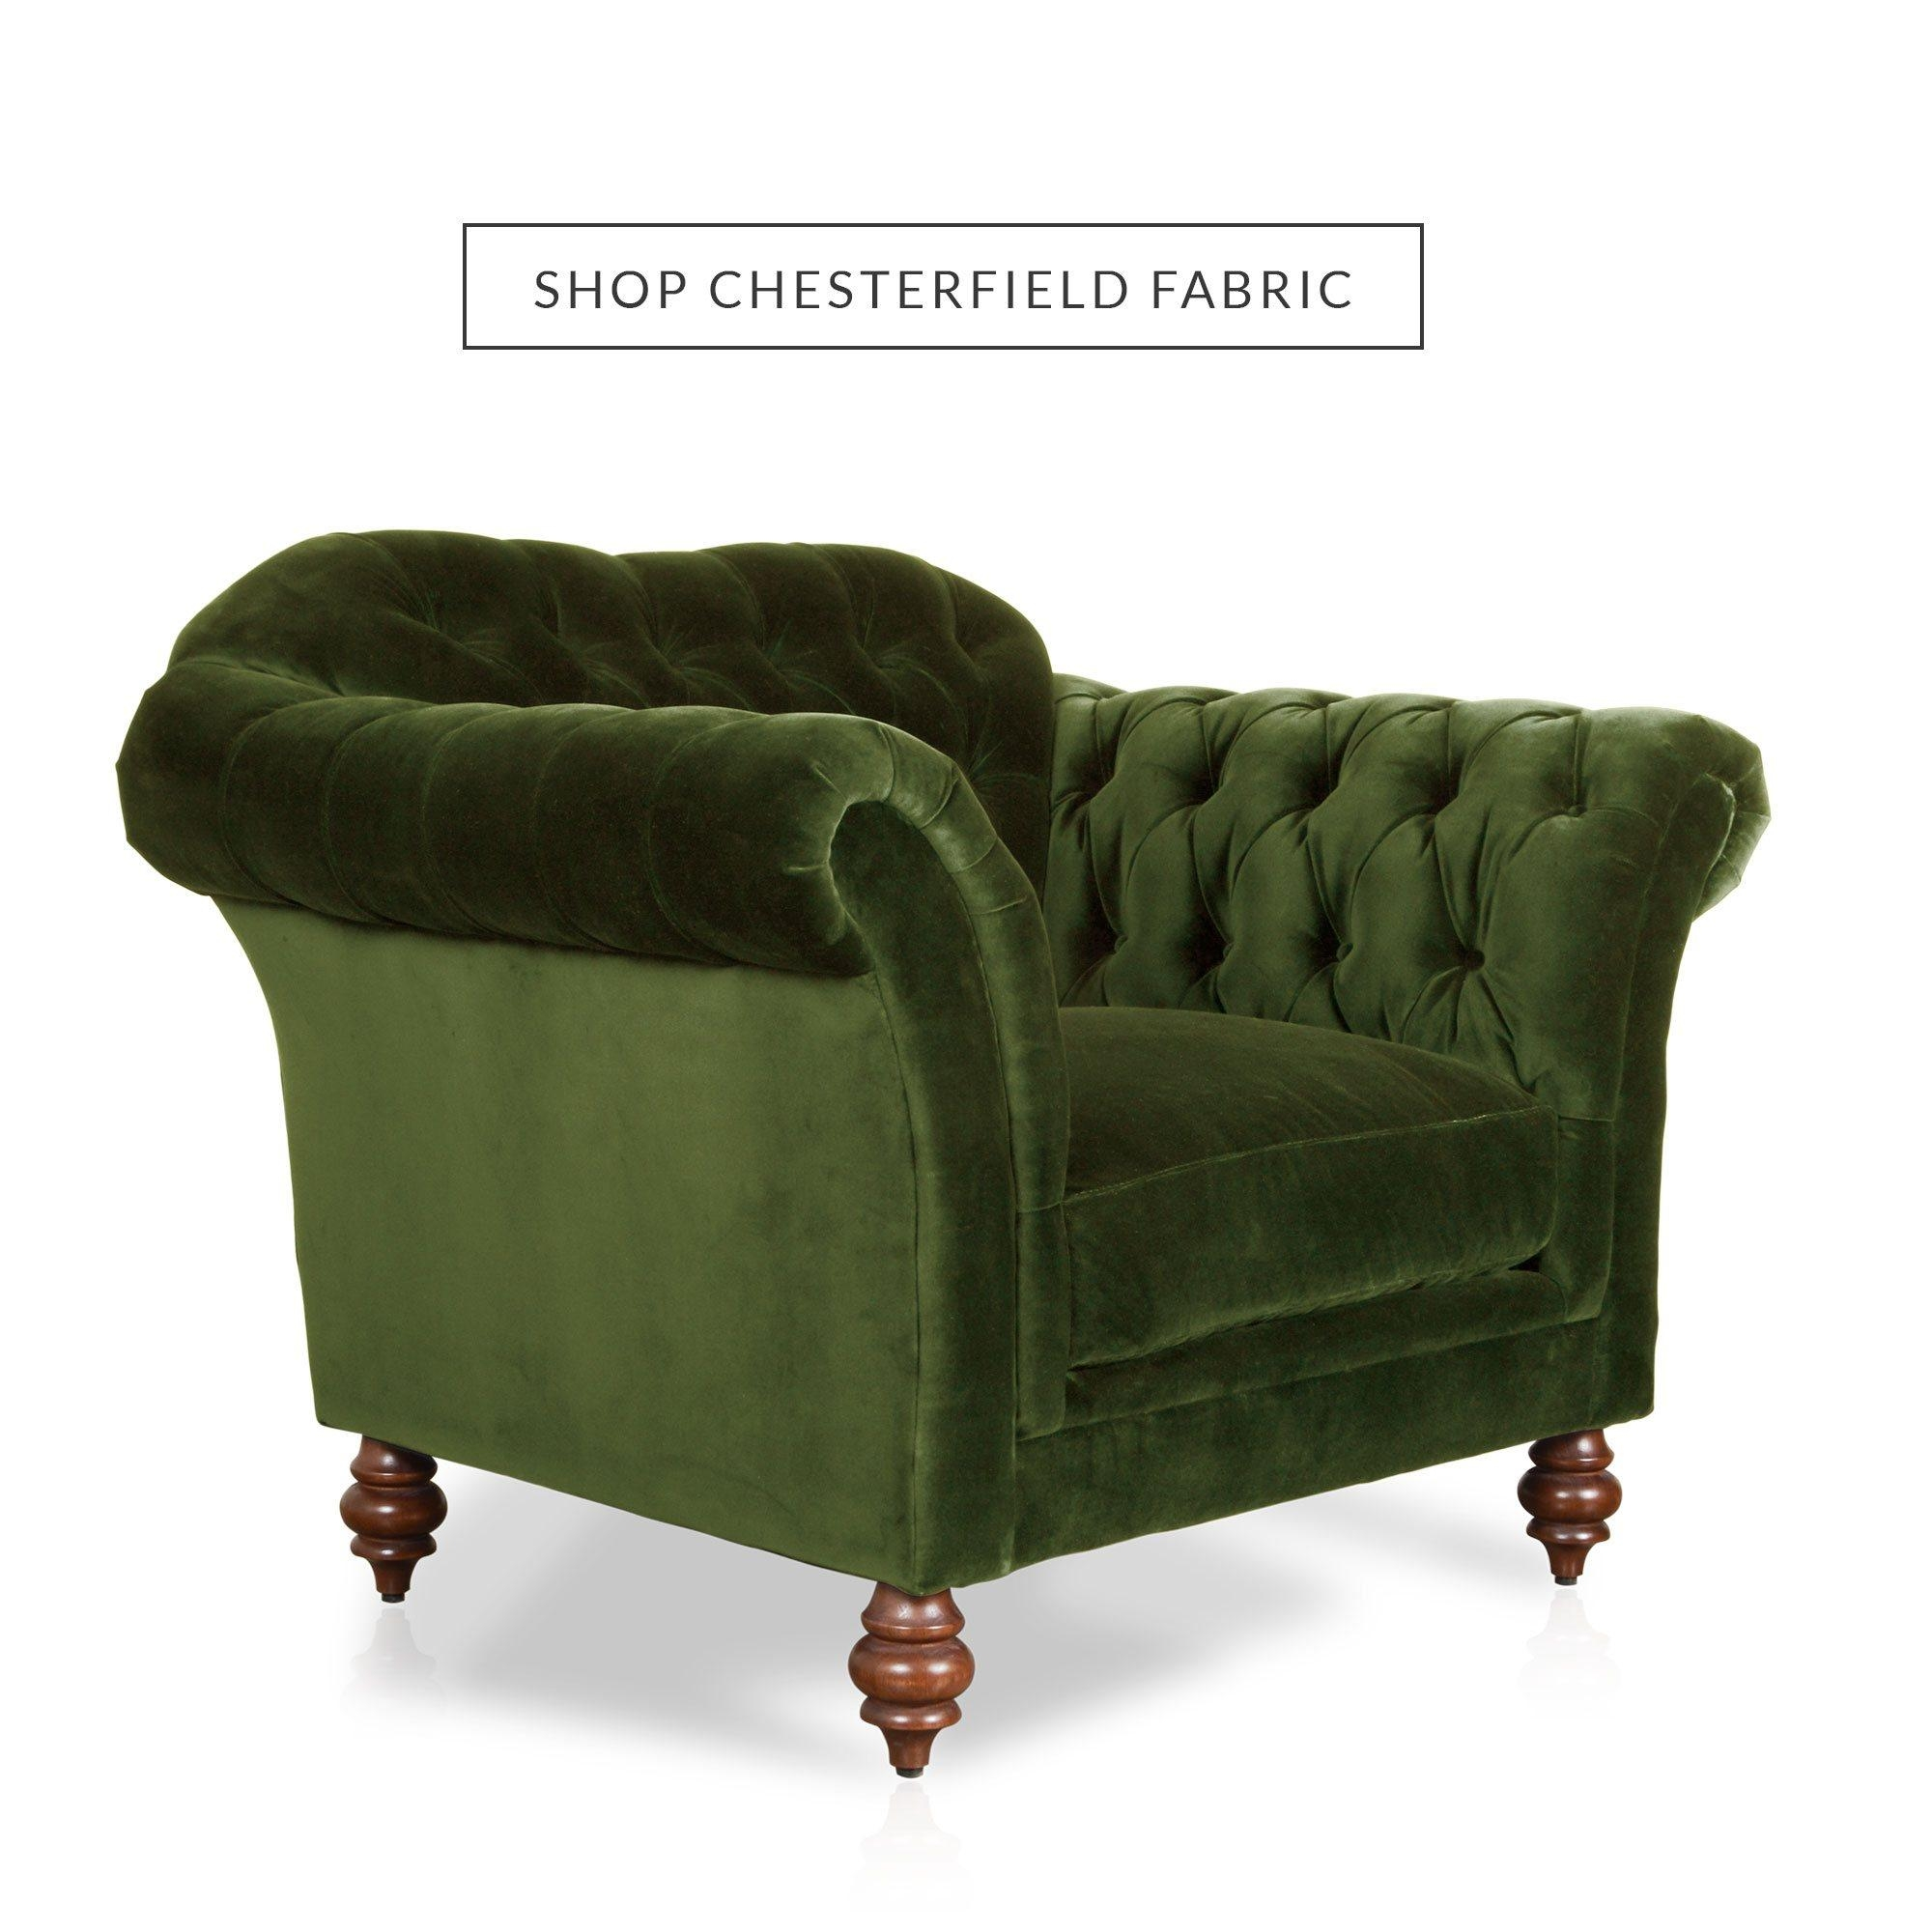 Chesterfield Sofas, Modern Furniture Made In Usa | Cococohome For Chesterfield Sofas And Chairs (View 16 of 20)